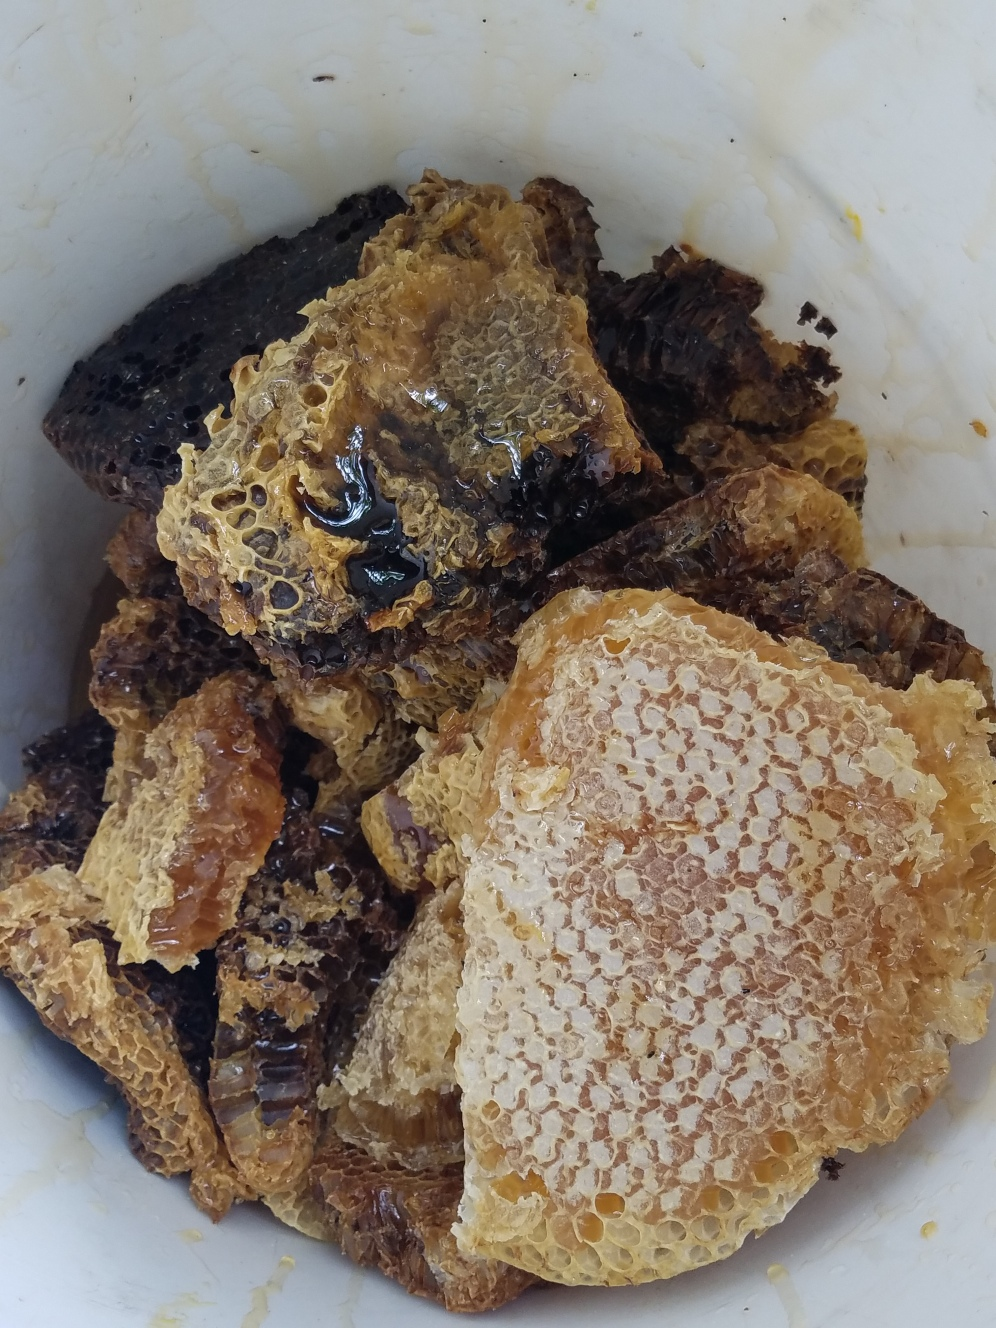 Freshly-harvested honey comb from our top bar hives